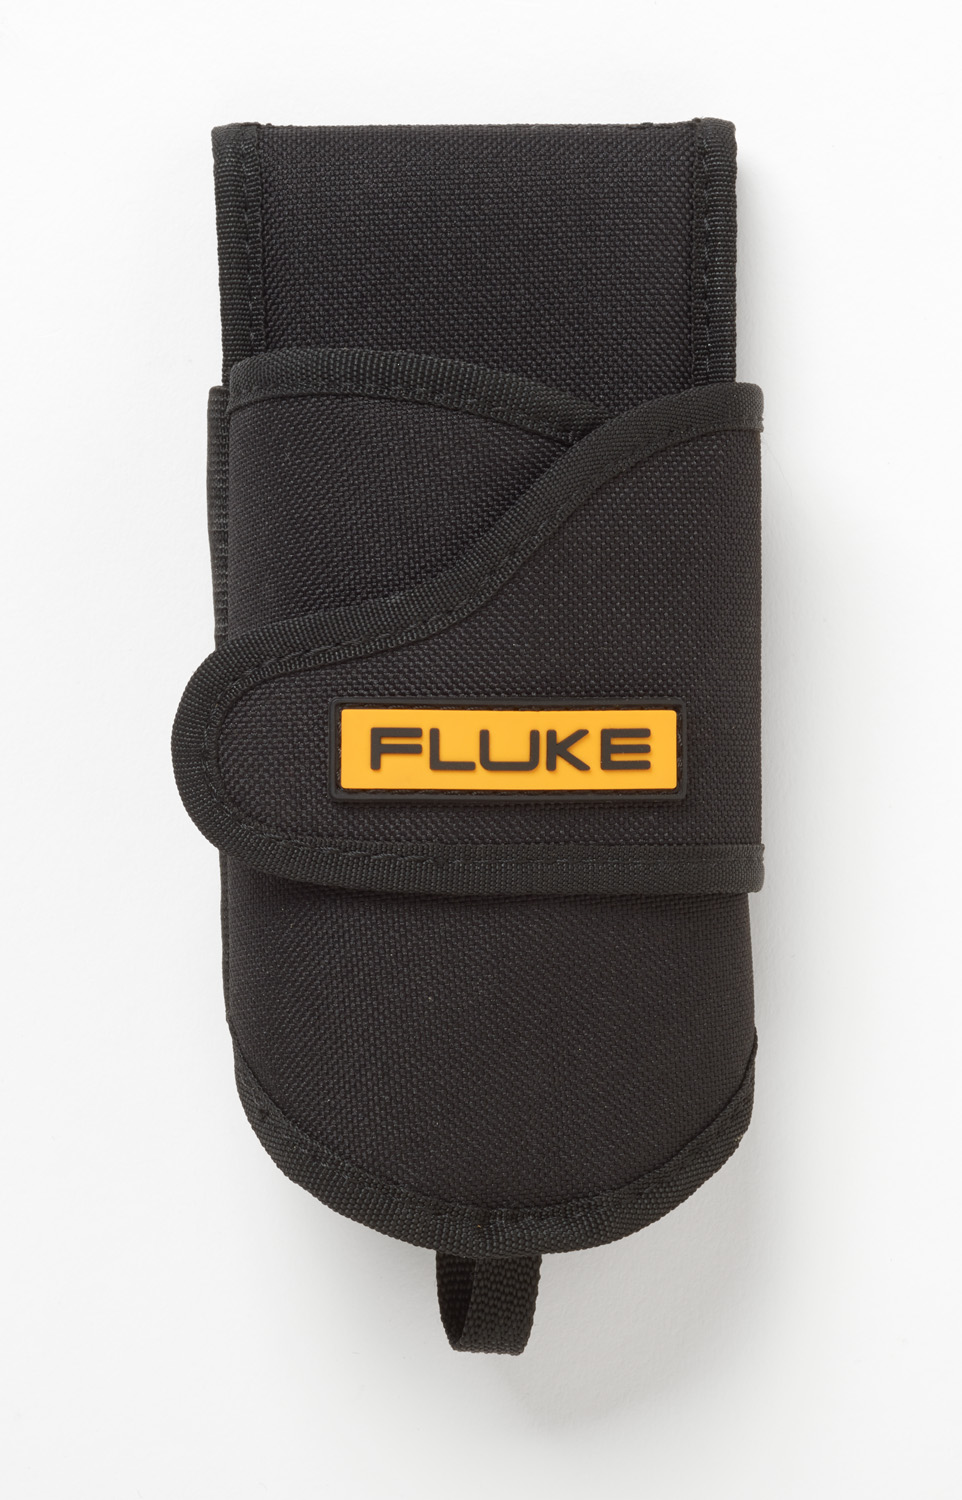 Rugged fabric holster that includes a built-in belt loop for securing your tool, and a flap for holding your test leads.